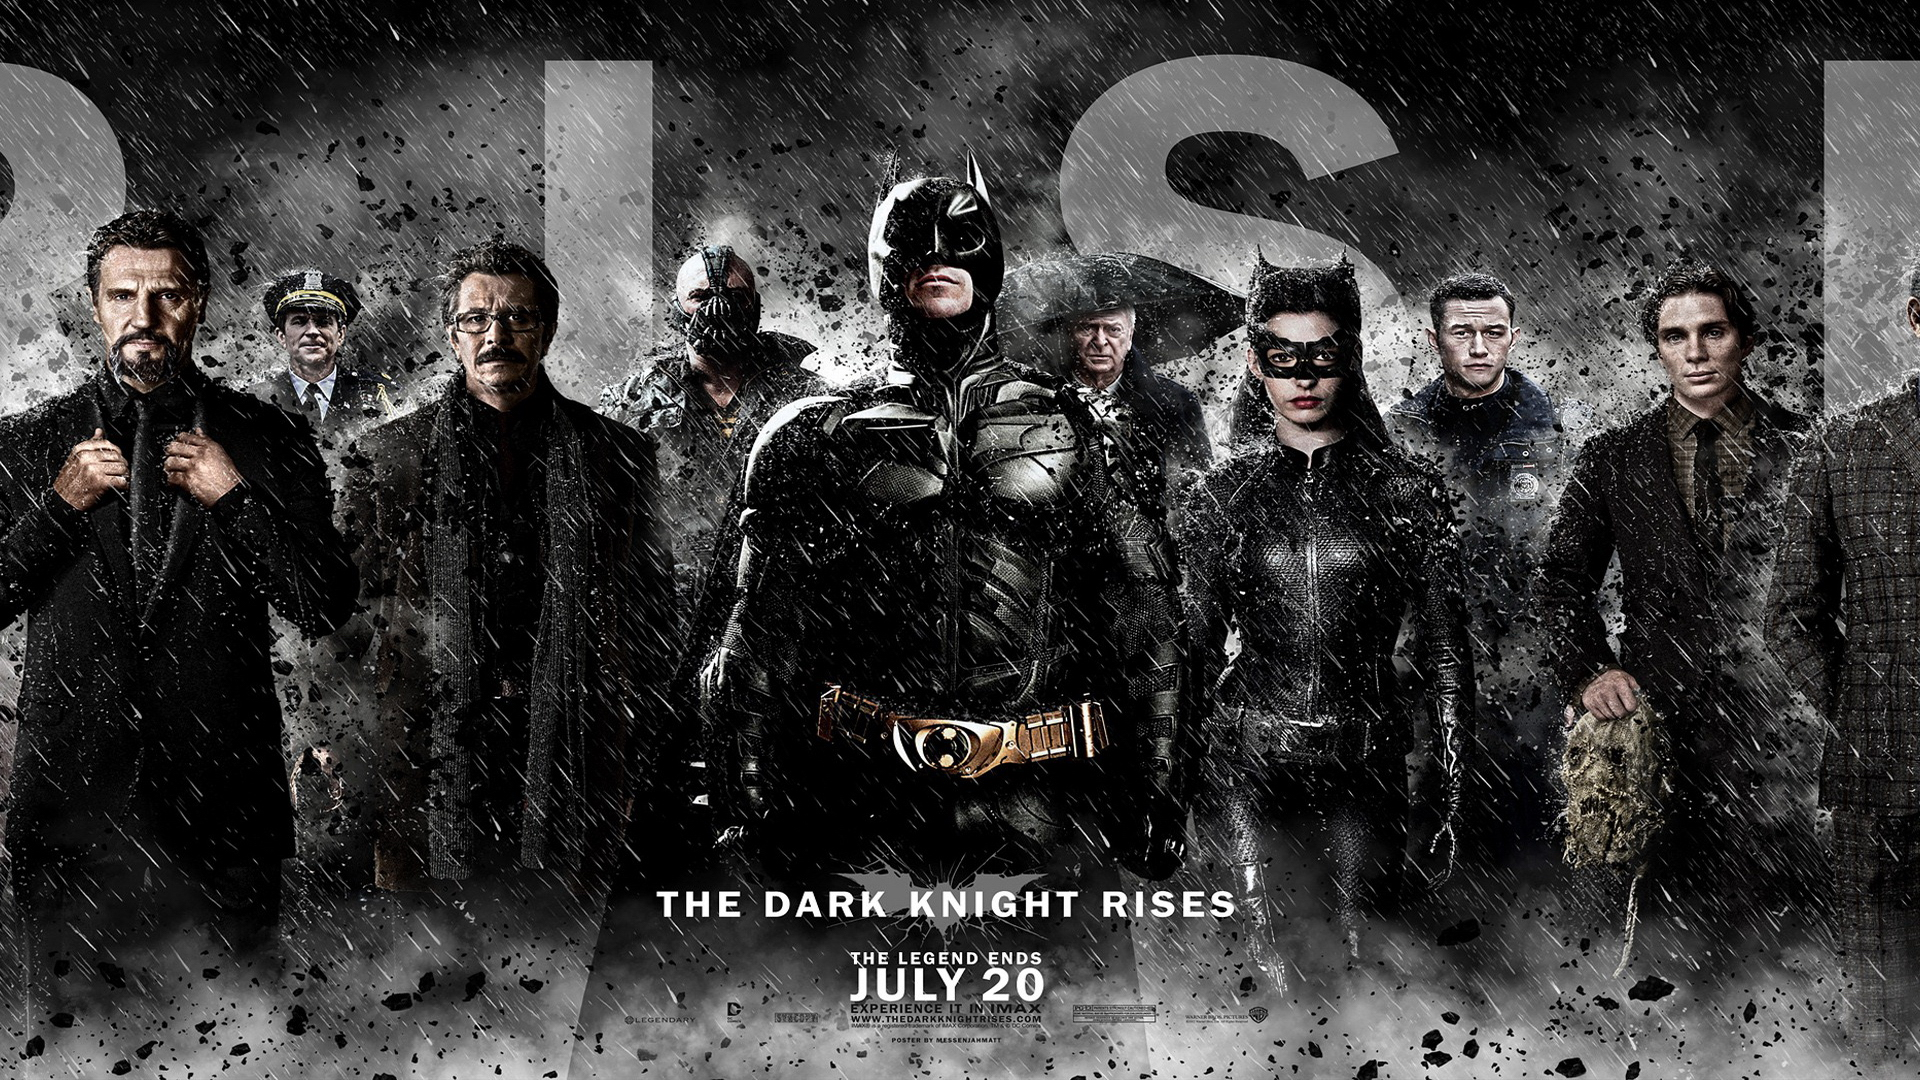 Batman The Dark Knight Rises HD Wallpapers 1920x1080 Wallpaper Hd 3D